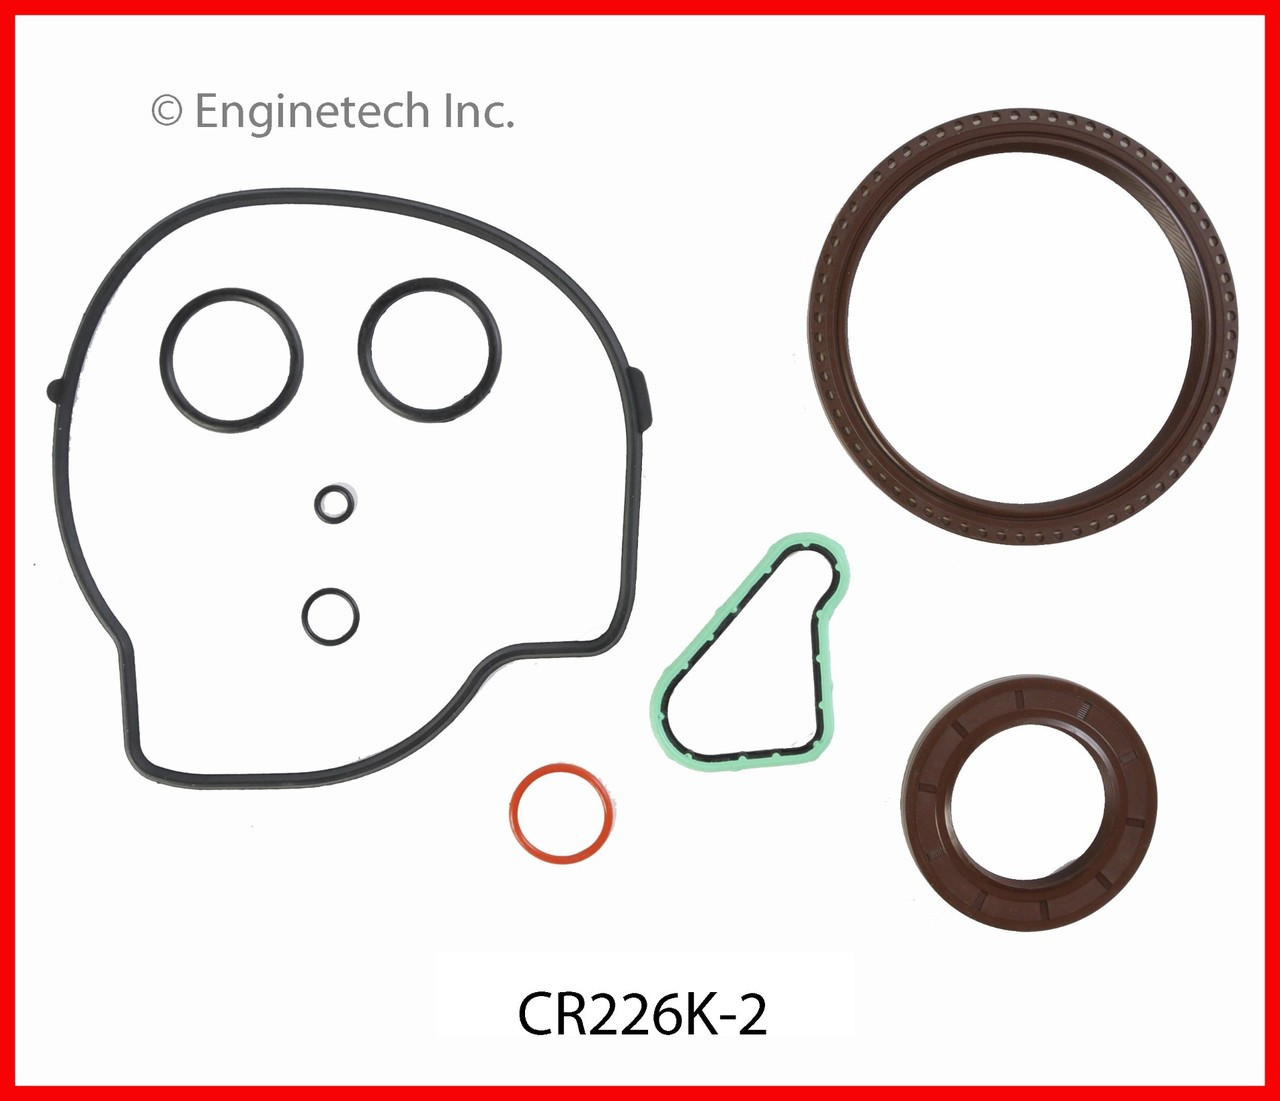 small resolution of 2006 mitsubishi raider 3 7l engine gasket set cr226k 2 14